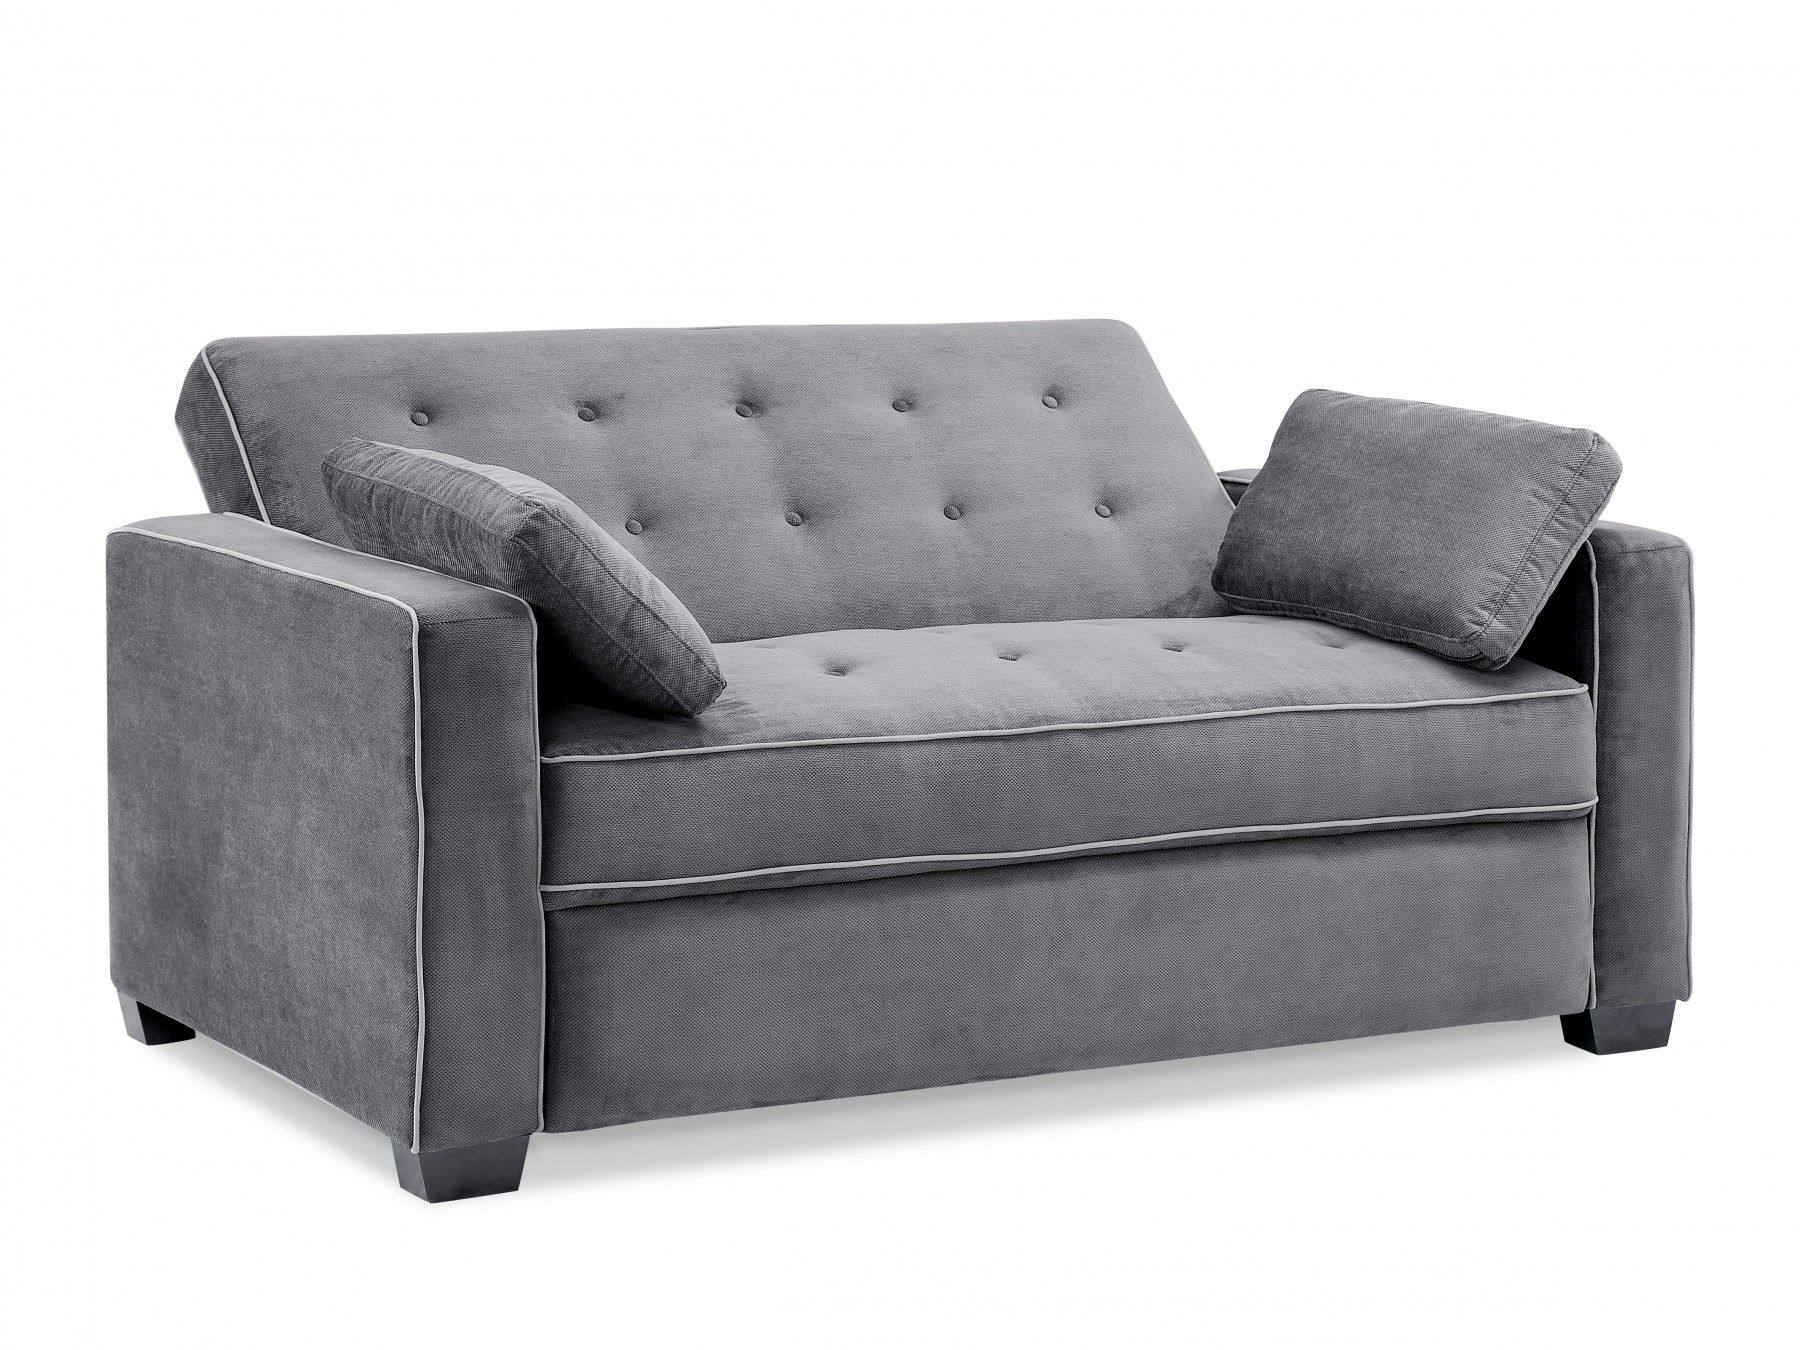 Augustine (Full) Sofa, Furniture, Full size sofa bed